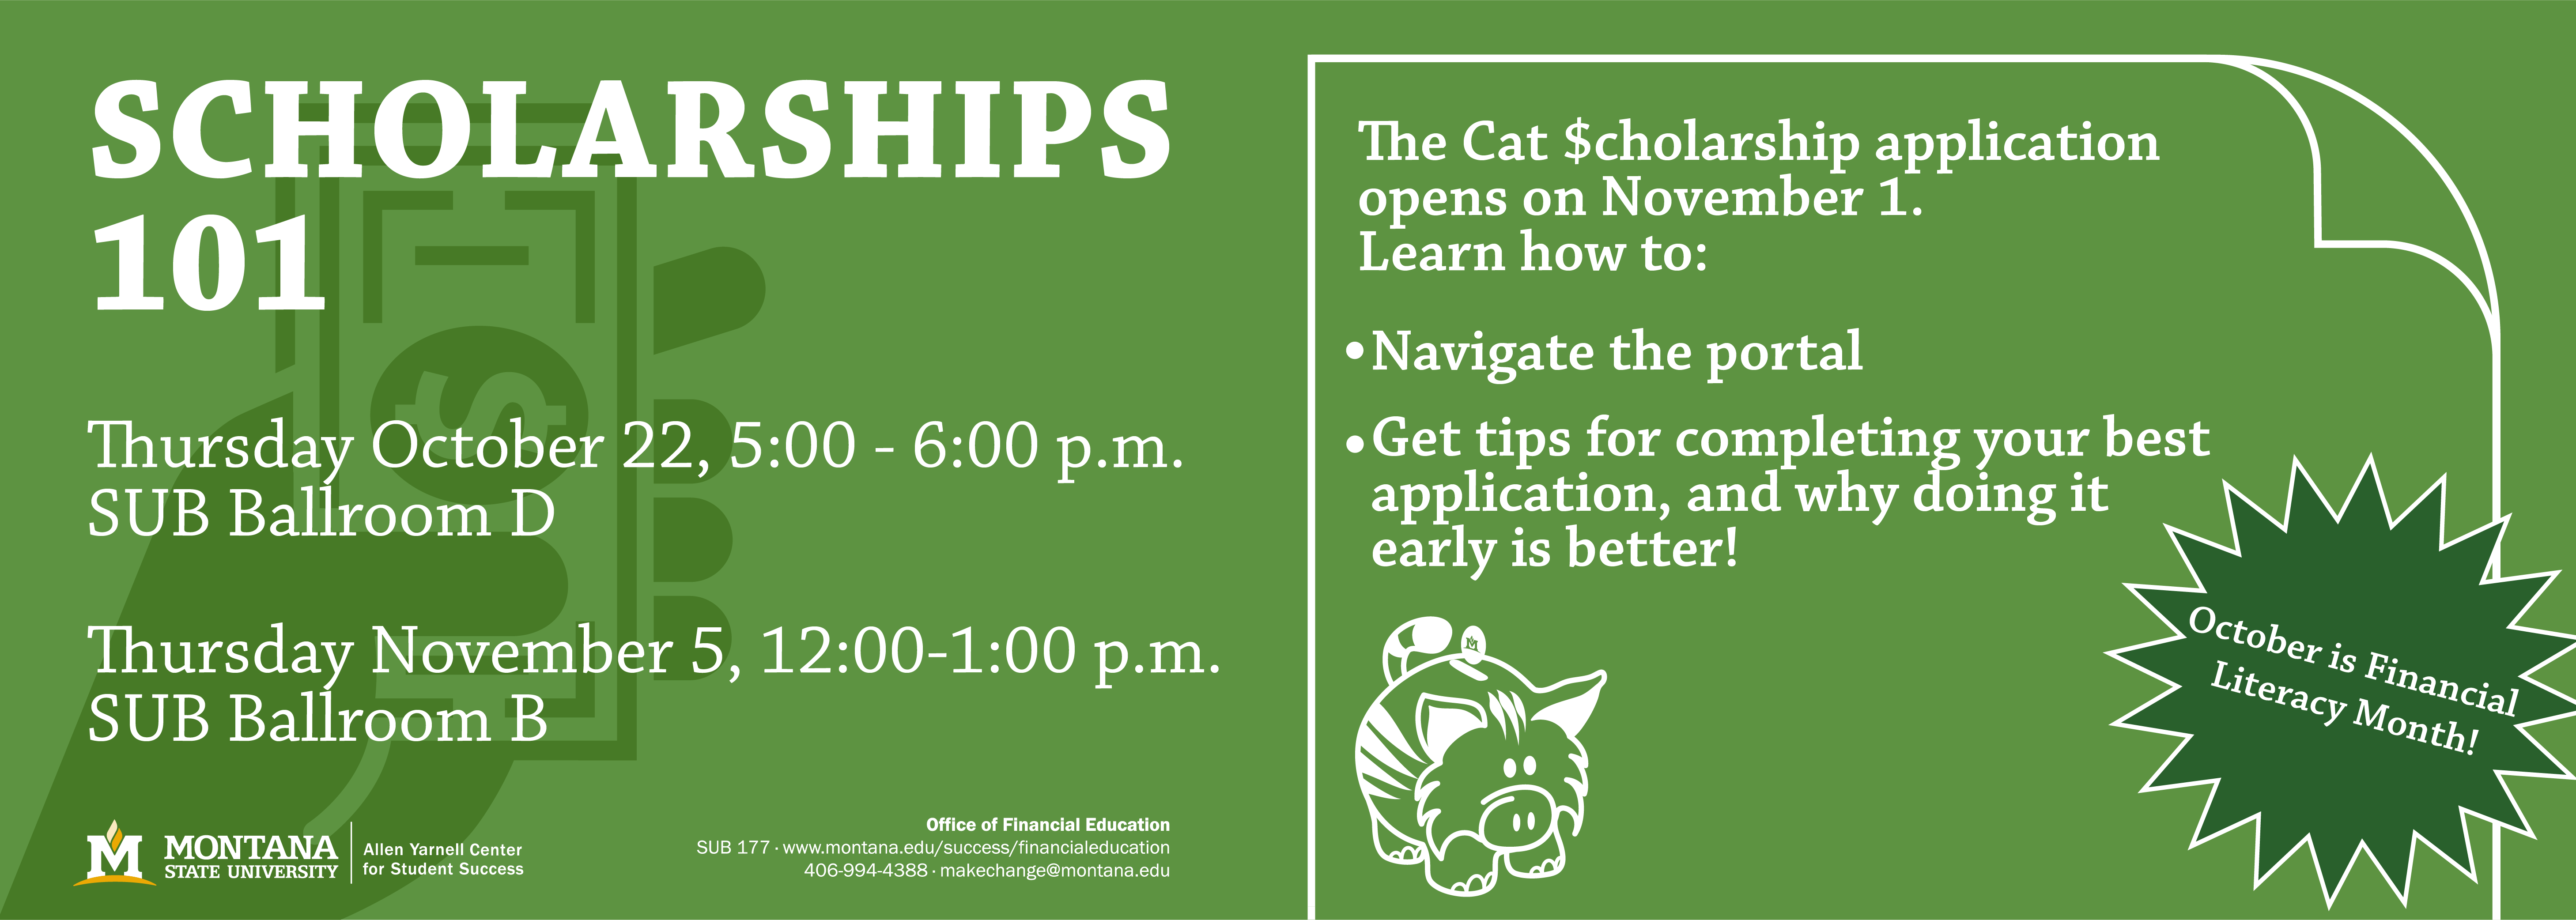 Scholarships 101 Thursday October 22 5:00 - 6:00 pm SUB Ballroom D  Thursday November 5, 12:00-1:00 pm SUB Ballroom B  The Cat $cholarship application opens on November 1.  This single application form opens doors to hundreds of scholarship opportunities across campus! Learn how to successfully plan your content, navigate the portal, get tips for completing your best application, and why doing it early is better!  We will also review a number of outside scholarship search portals to help you find the most opportunities to help pay for school.